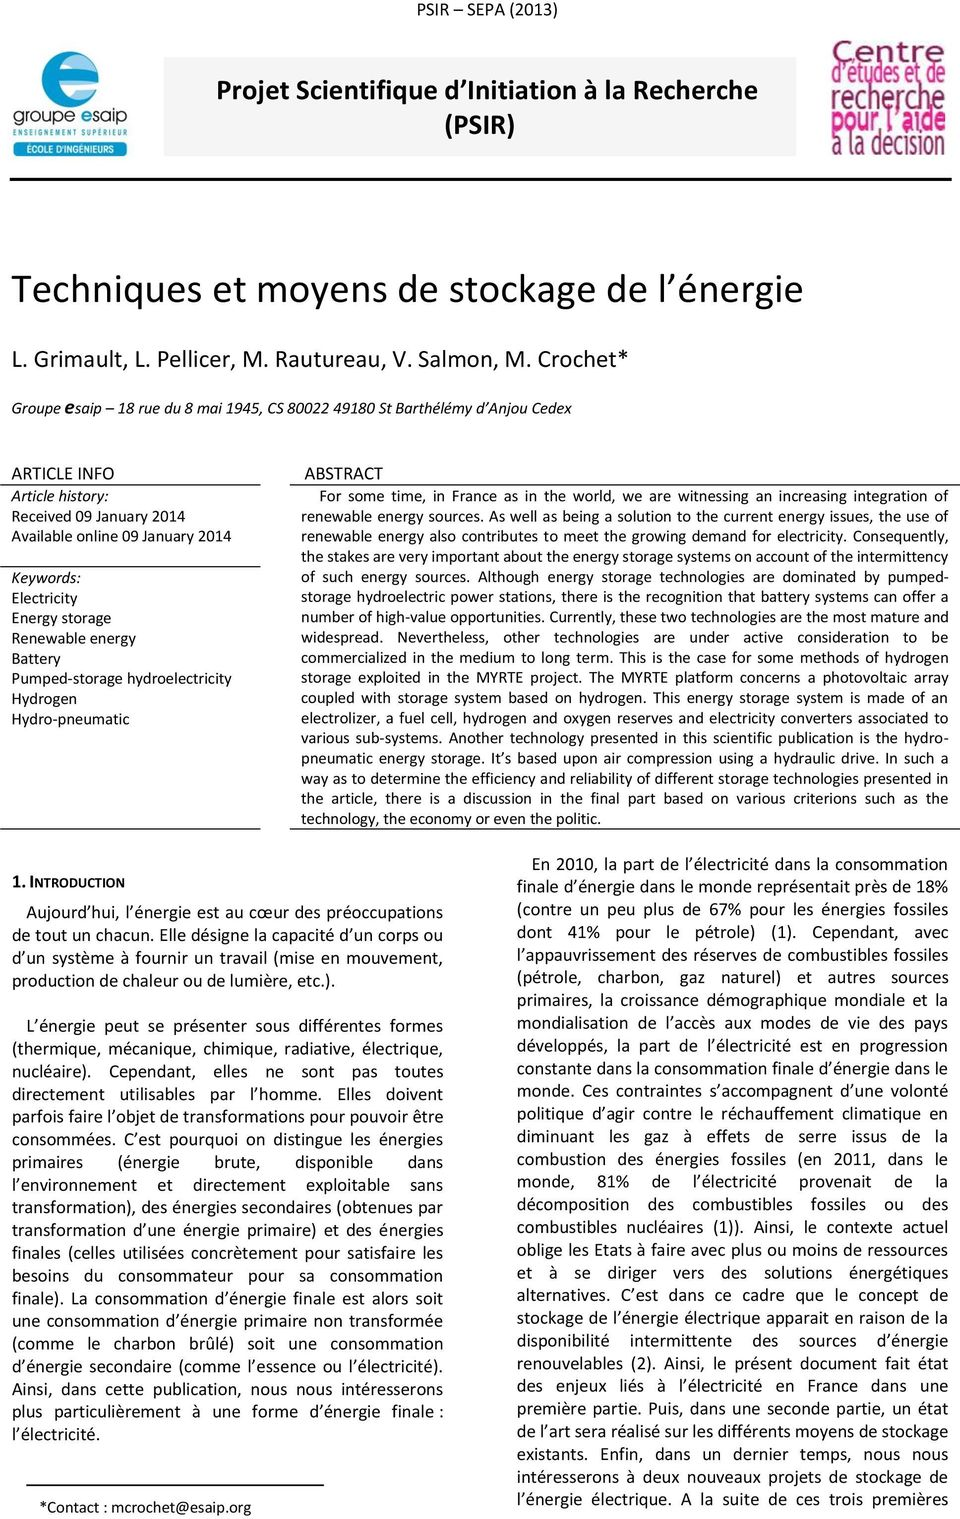 Energy storage Renewable energy Battery Pumped-storage hydroelectricity Hydrogen Hydro-pneumatic ABSTRACT For some time, in France as in the world, we are witnessing an increasing integration of